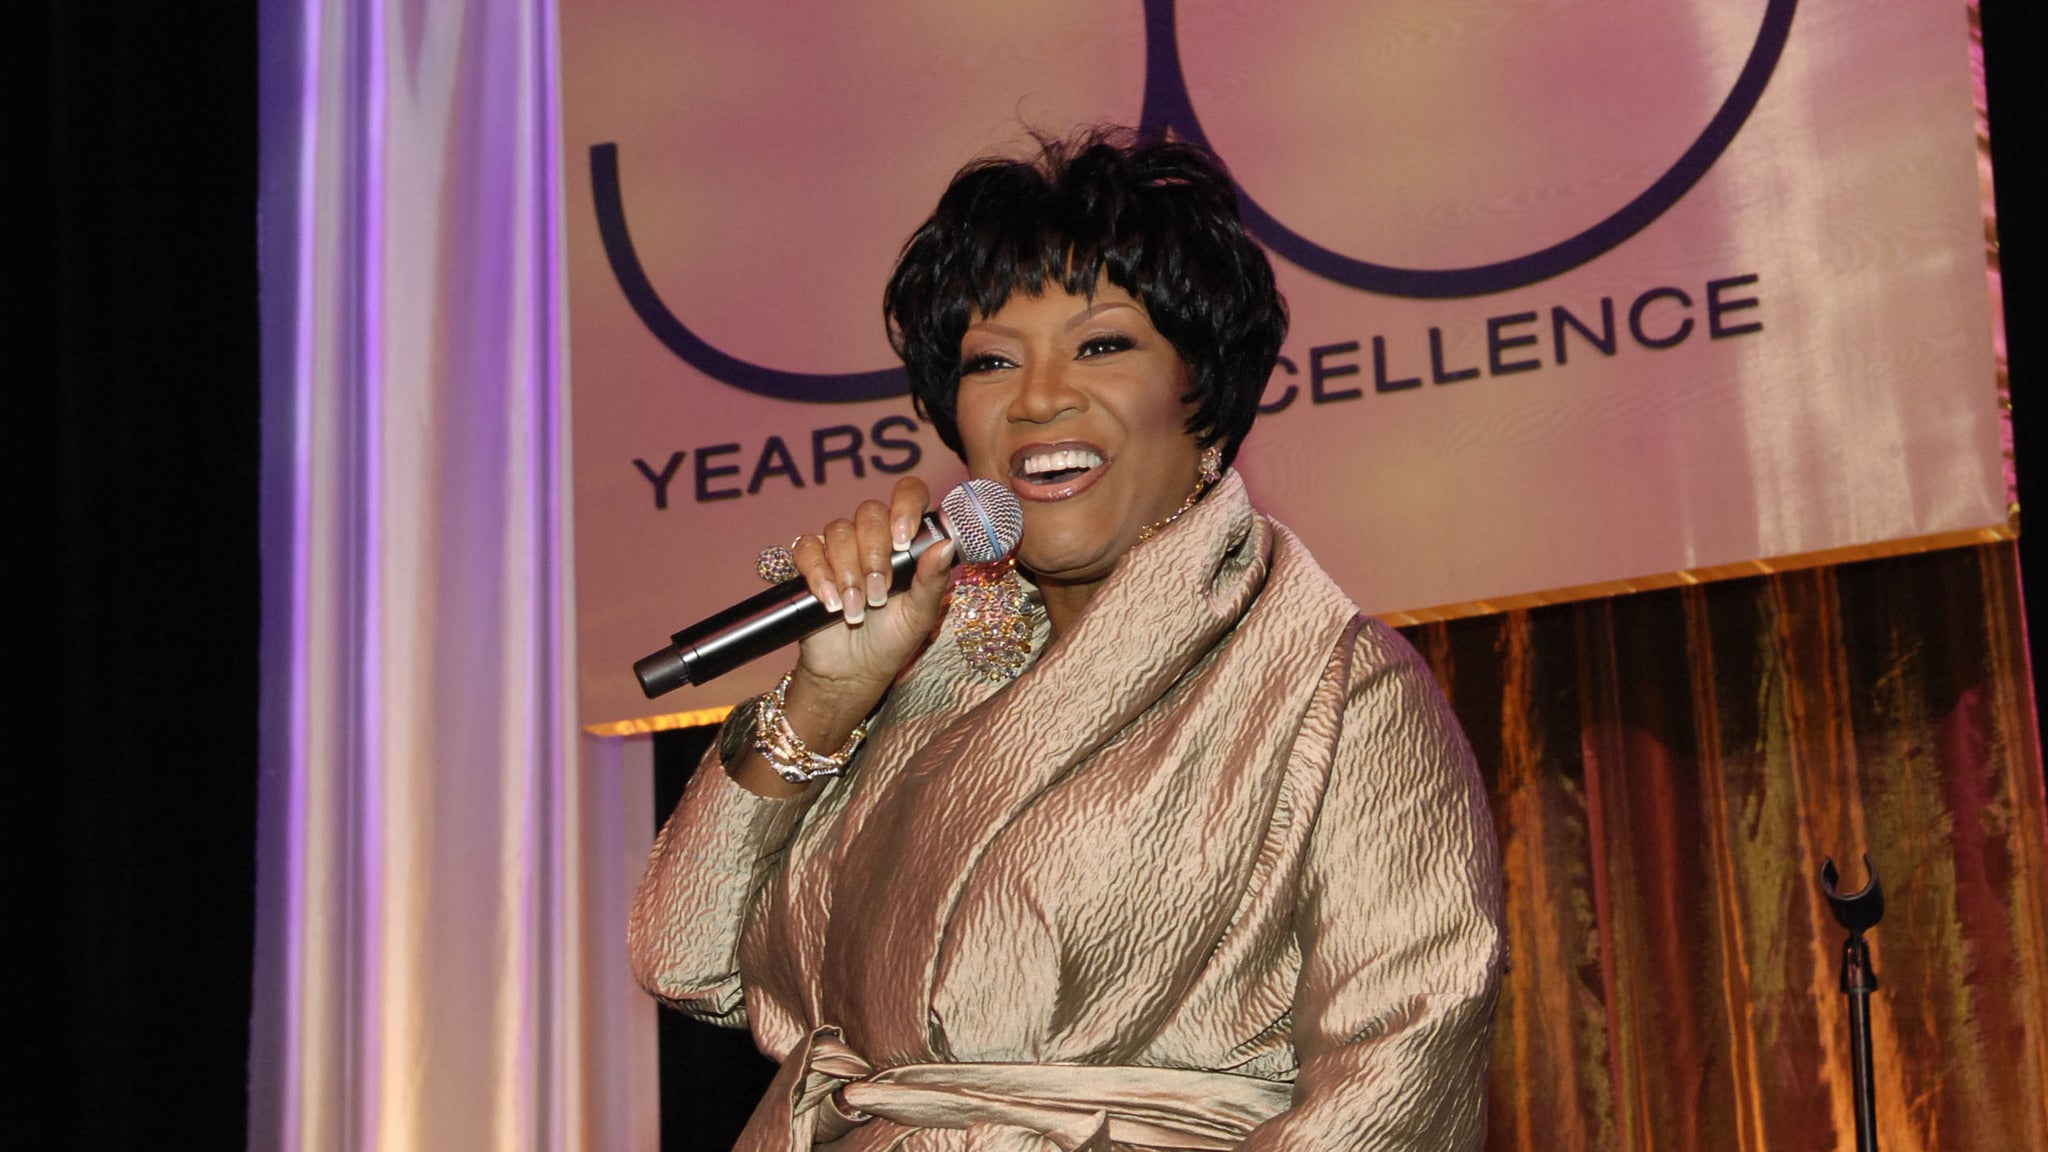 Patti LaBelle at Germain Arena